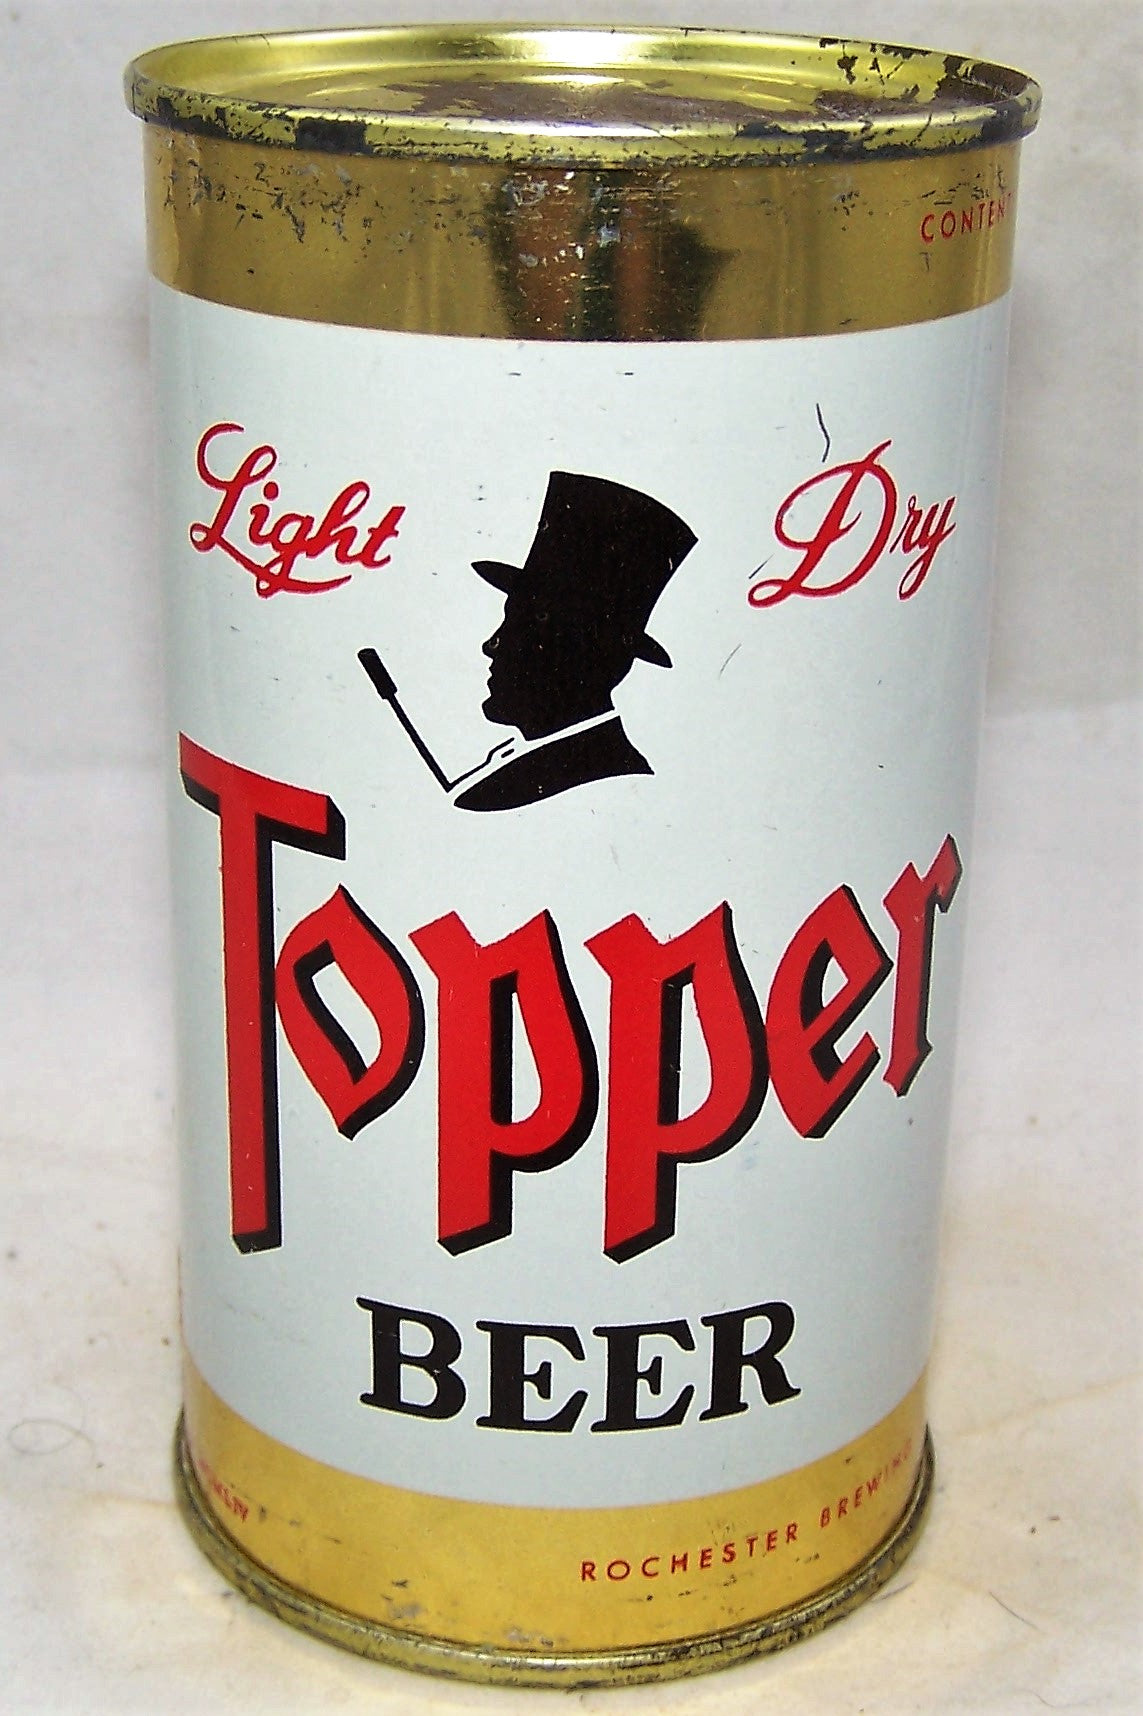 Topper Light Dry Beer, USBC 139-08, Grade 1 to 1/1+